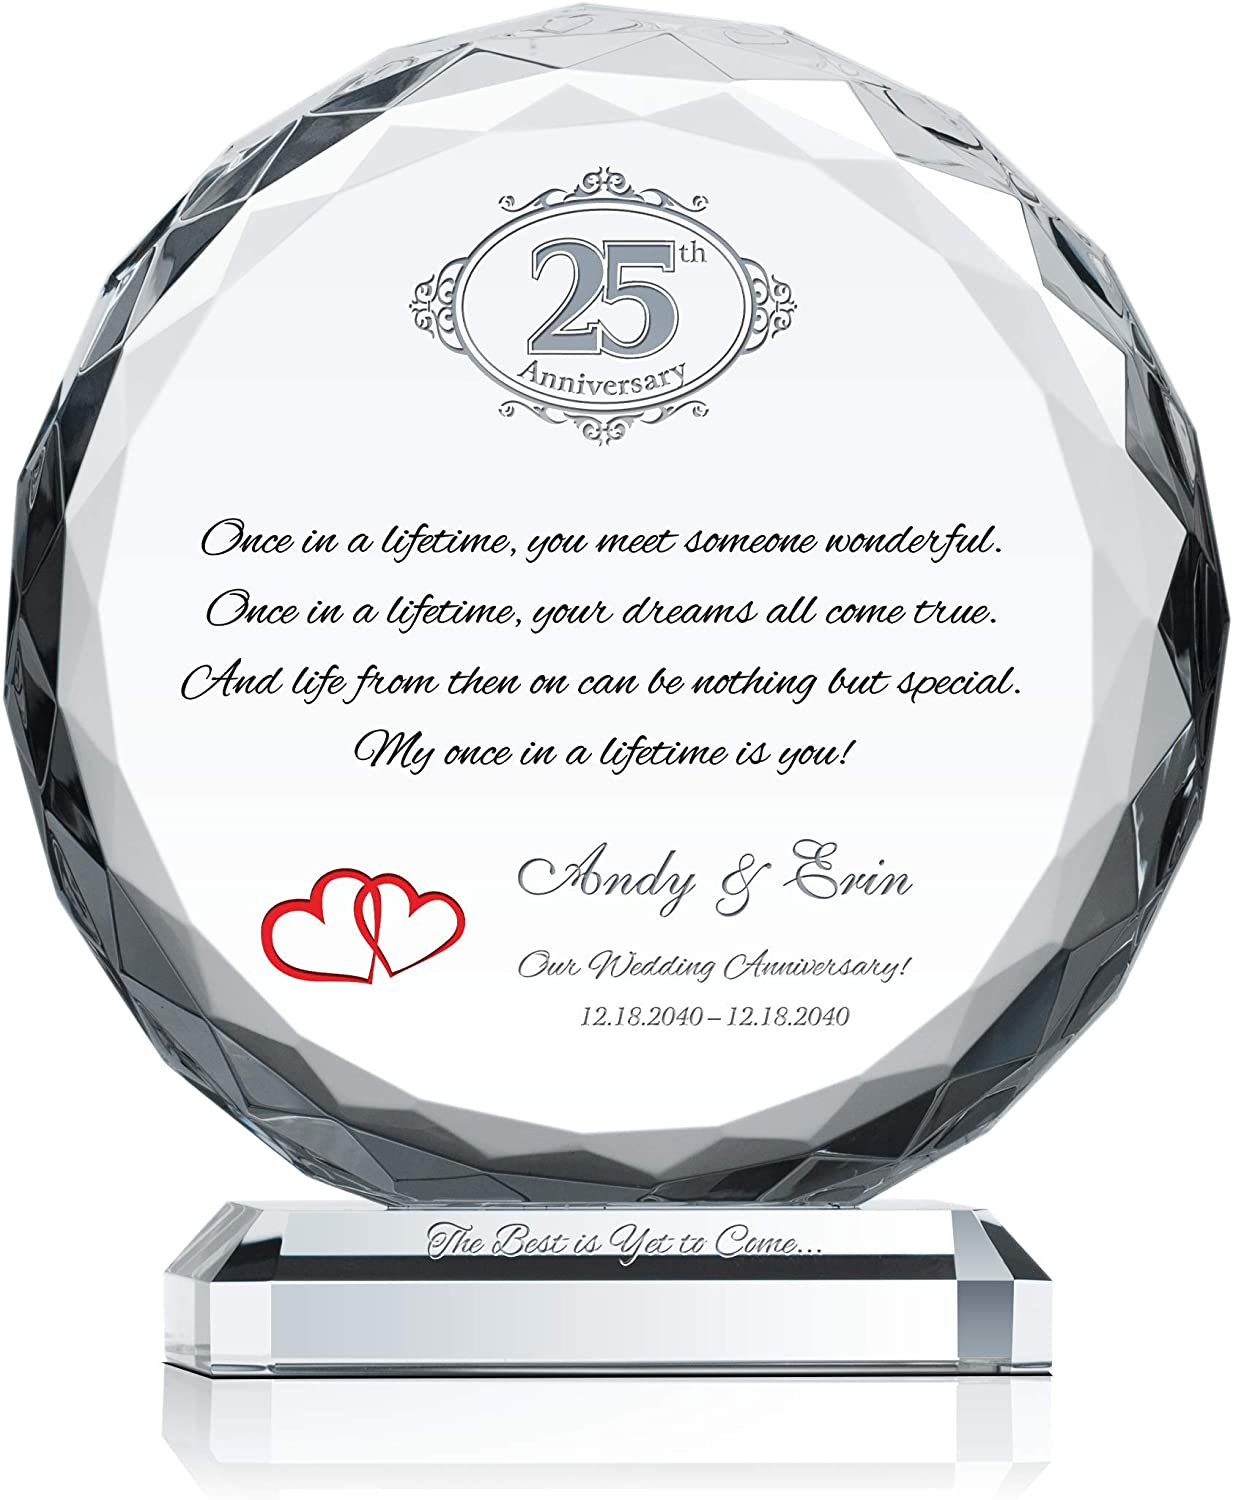 1 year warranty Personalized Crystal Gift for 25th o Max 71% OFF Anniversary Wedding Him